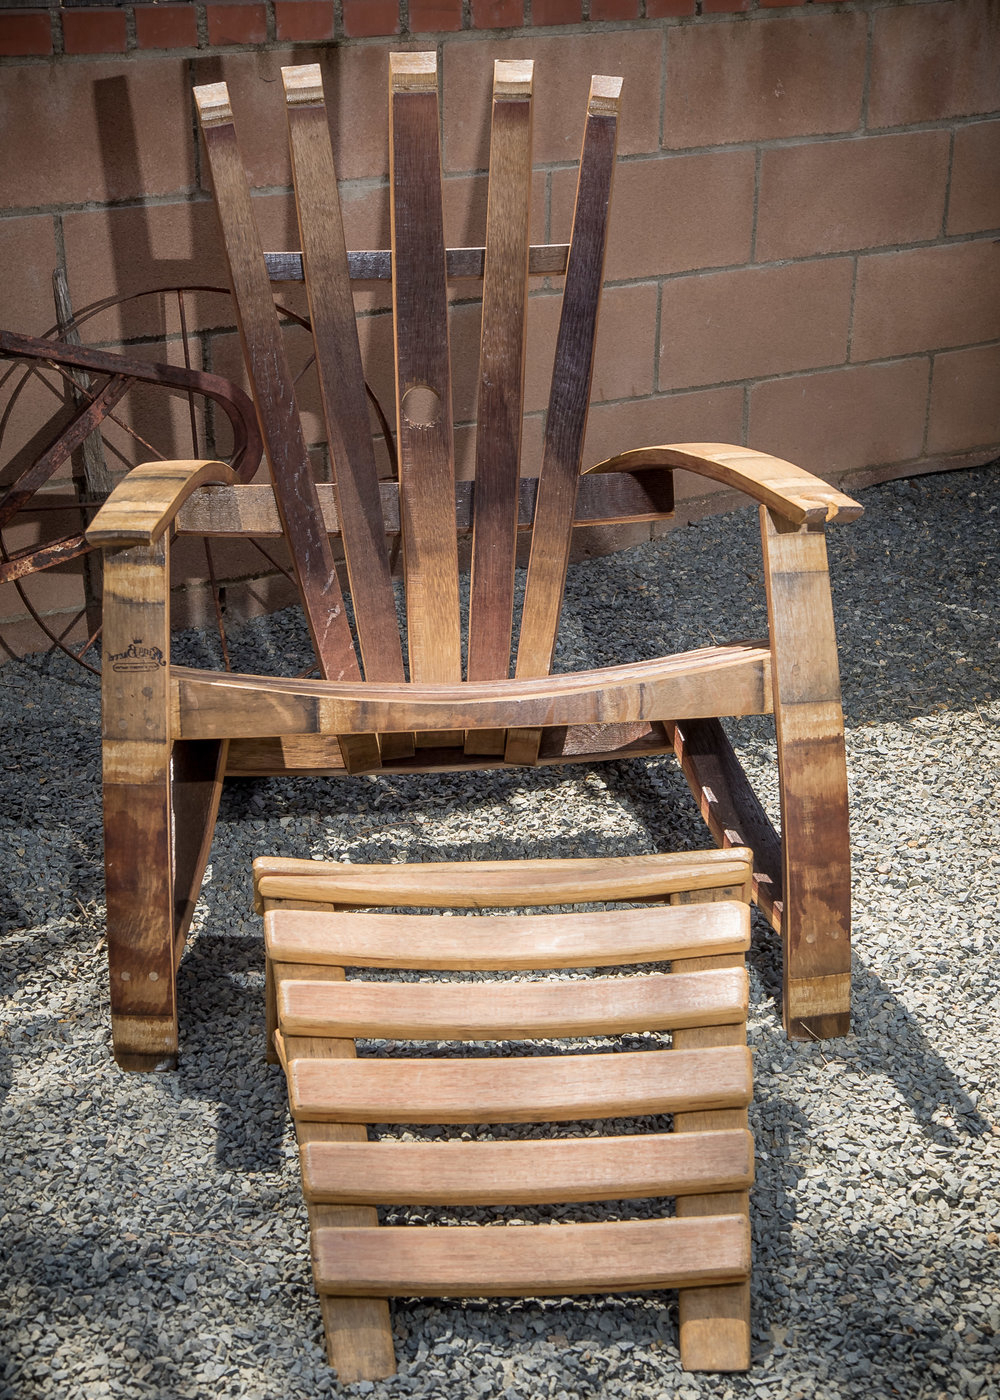 Famous Briseno Barrel Chairs For Take Home A Piece Of Wine Country With King Barrel Of Old (View 19 of 20)